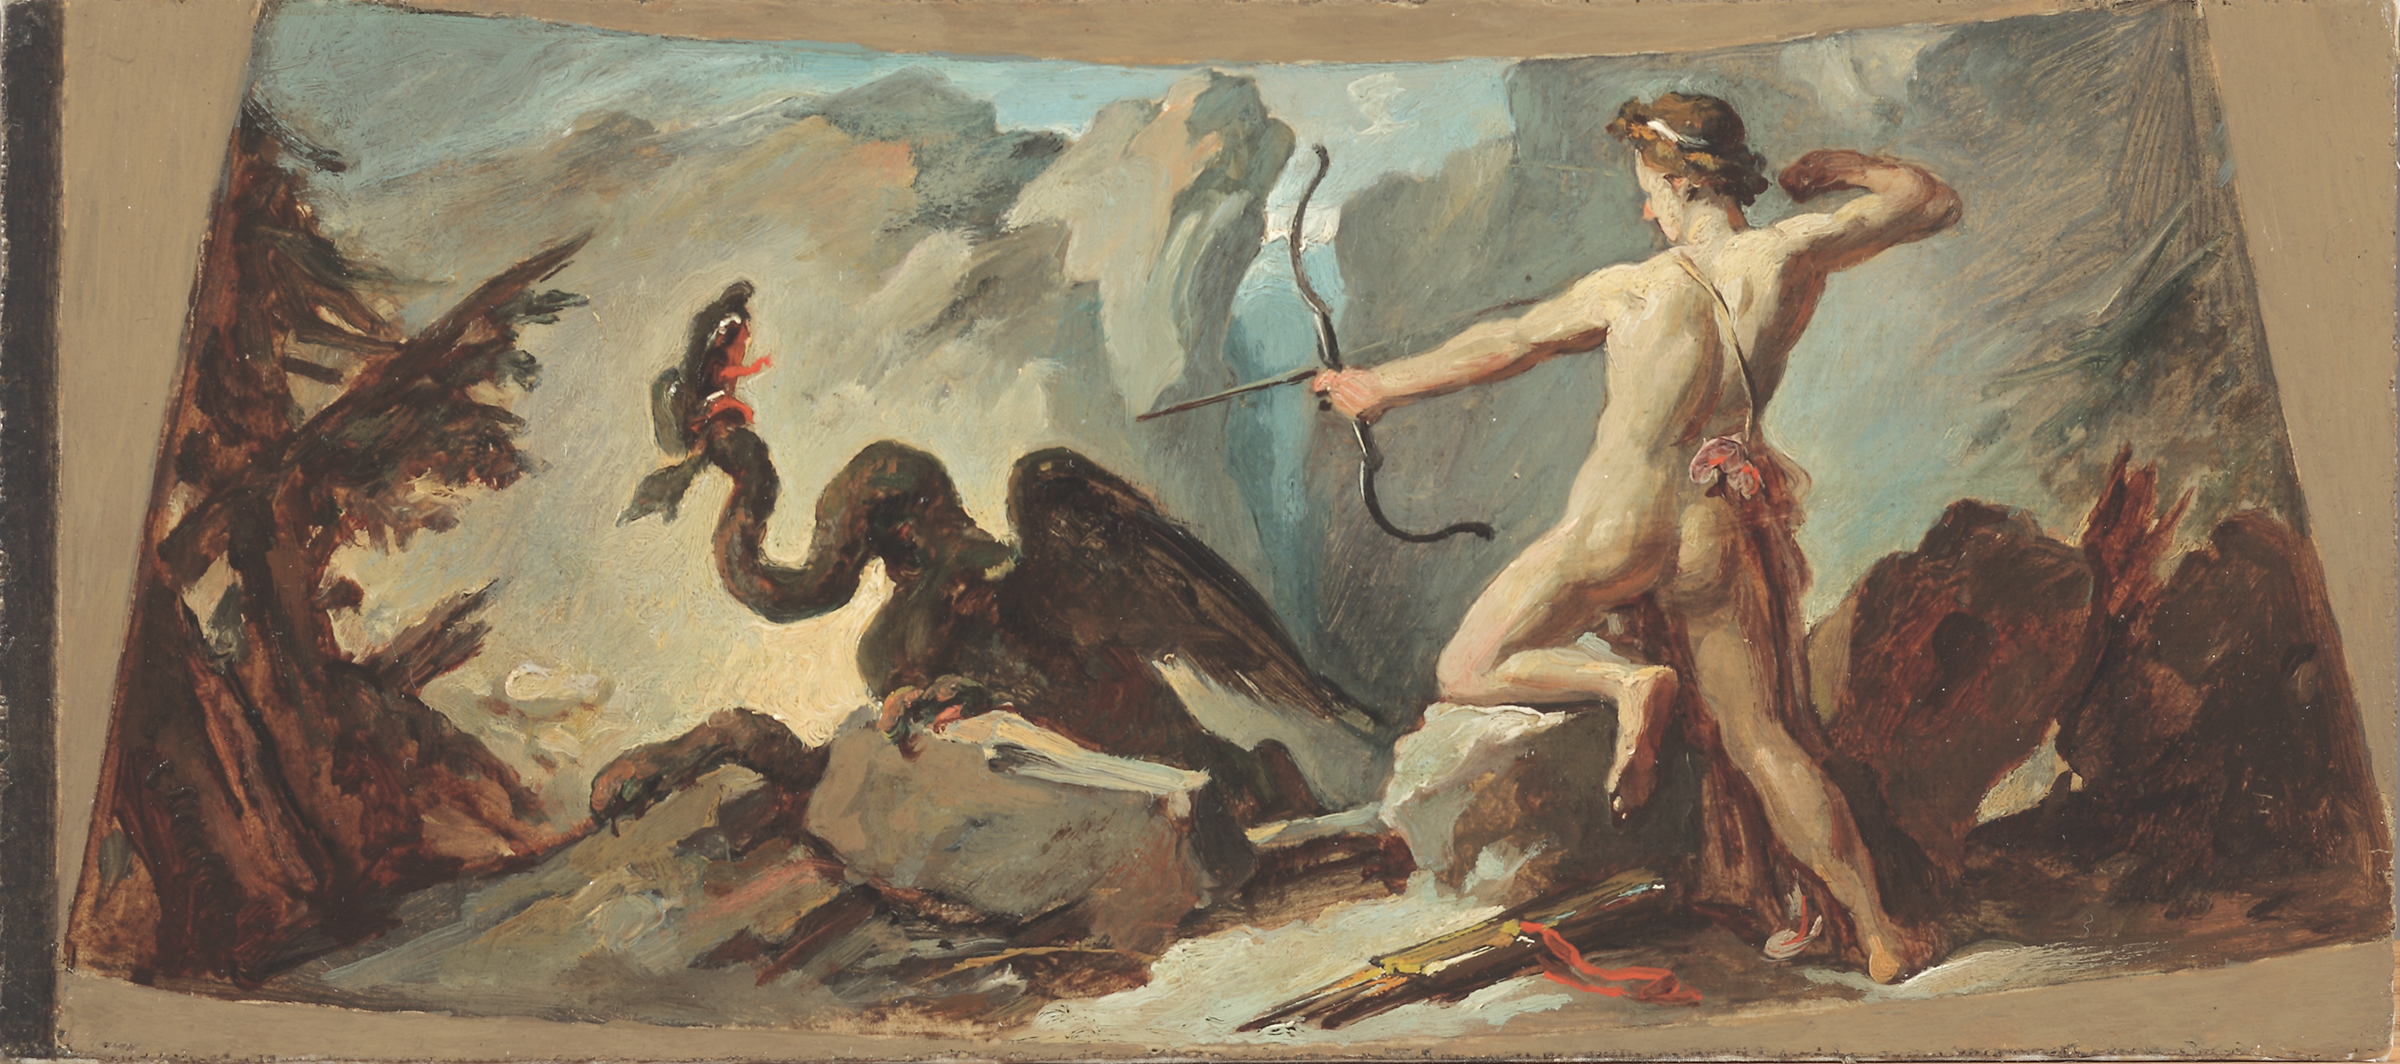 Circle of Jacopo Guarana, Apollo Slaying the Earth-Dragon Python